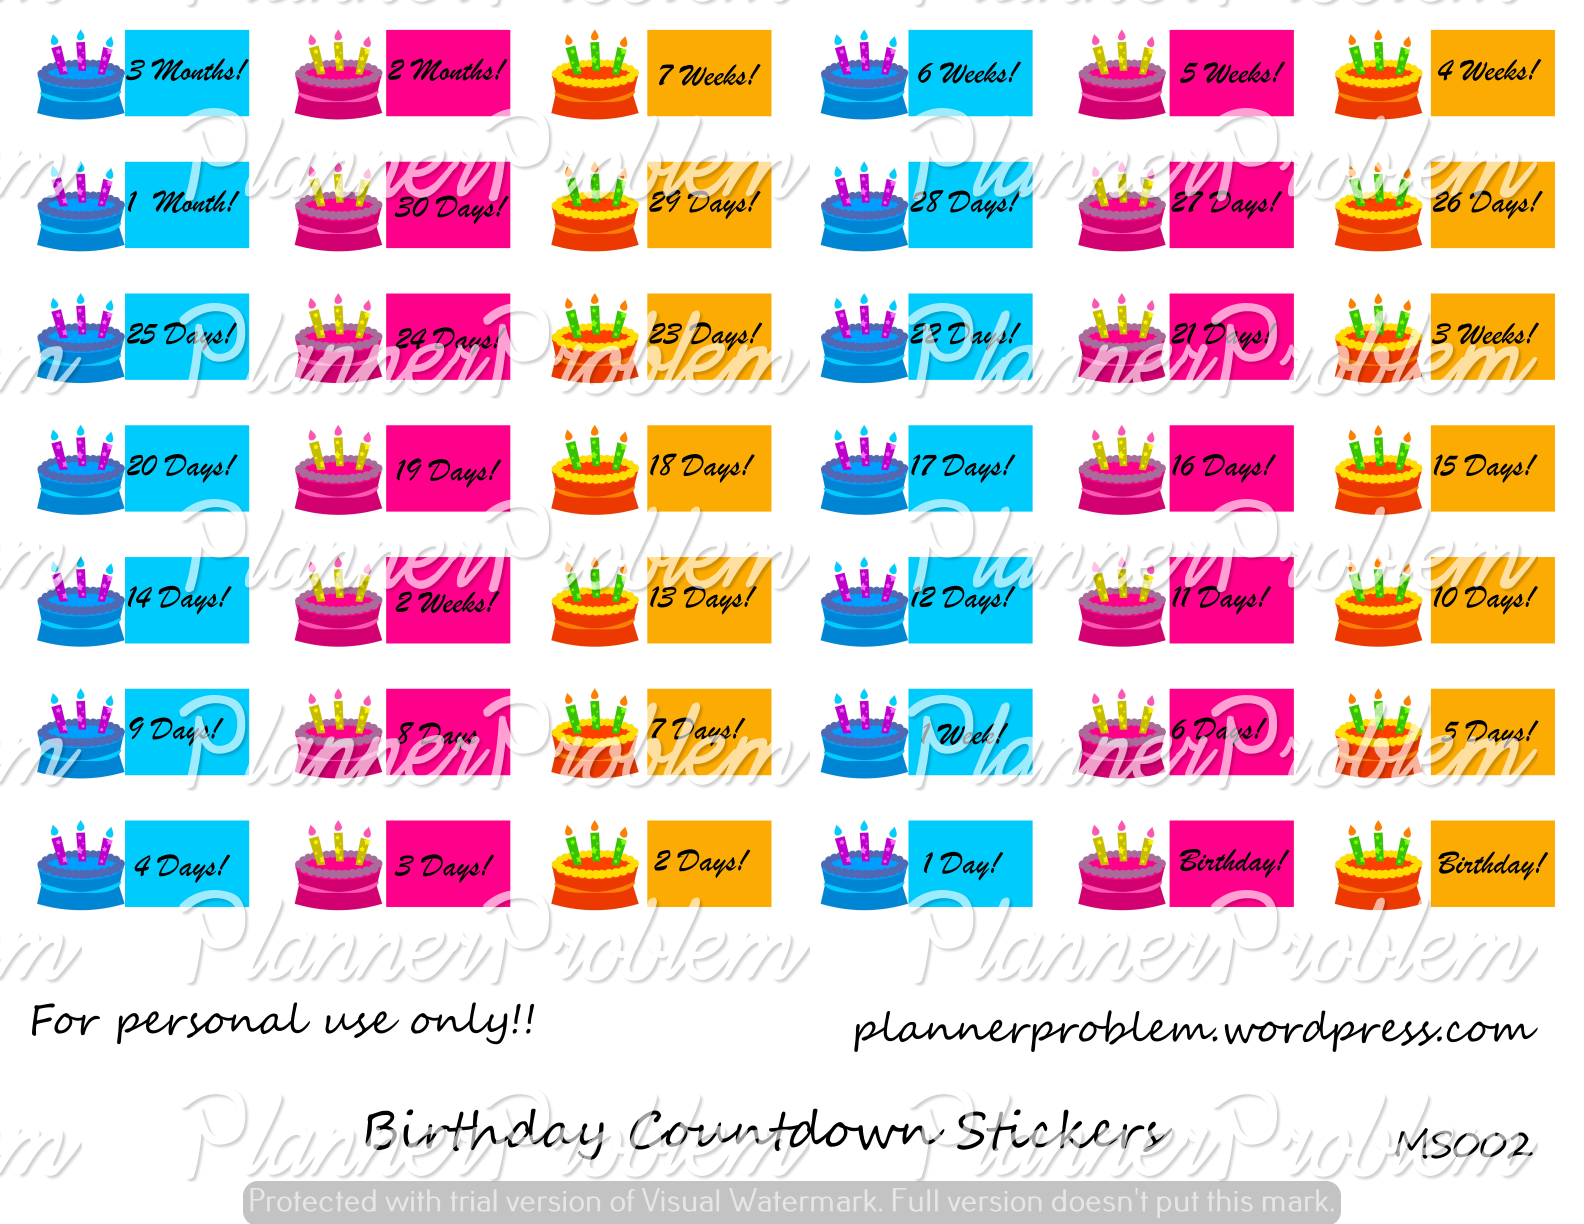 Free Birthday Countdown Stickers for the Erin Condren Life Planner and MAMBI Happy Planner! Download at https://plannerproblem.wordpress.com/2016/06/13/birthday-countdown-stickers-free-printable-planner-stickers-2/